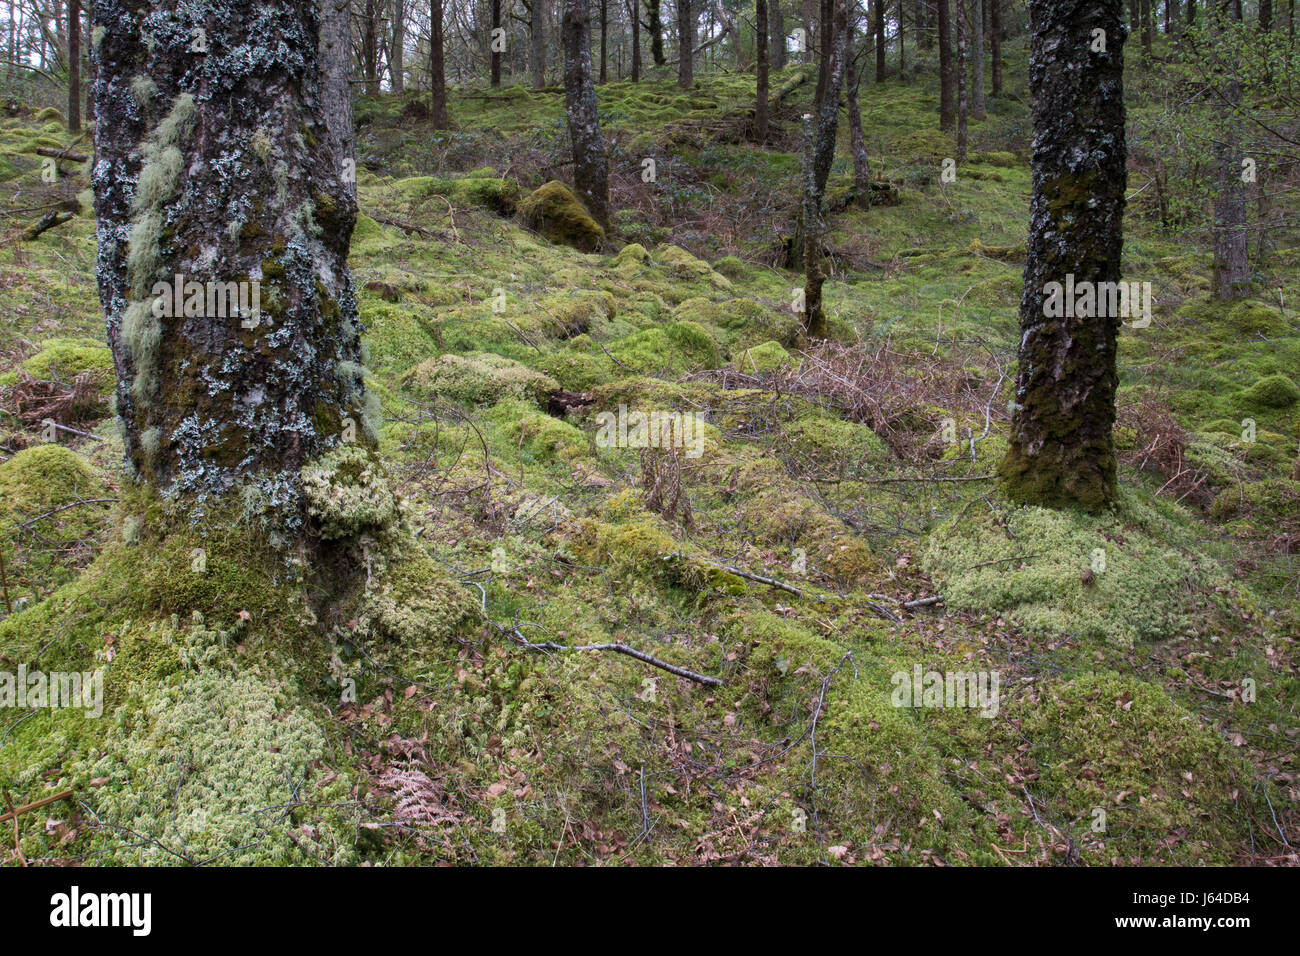 mossy undergrowth in a deciduous temperate rainforest in Snowdonia National Park, Wales - Stock Image